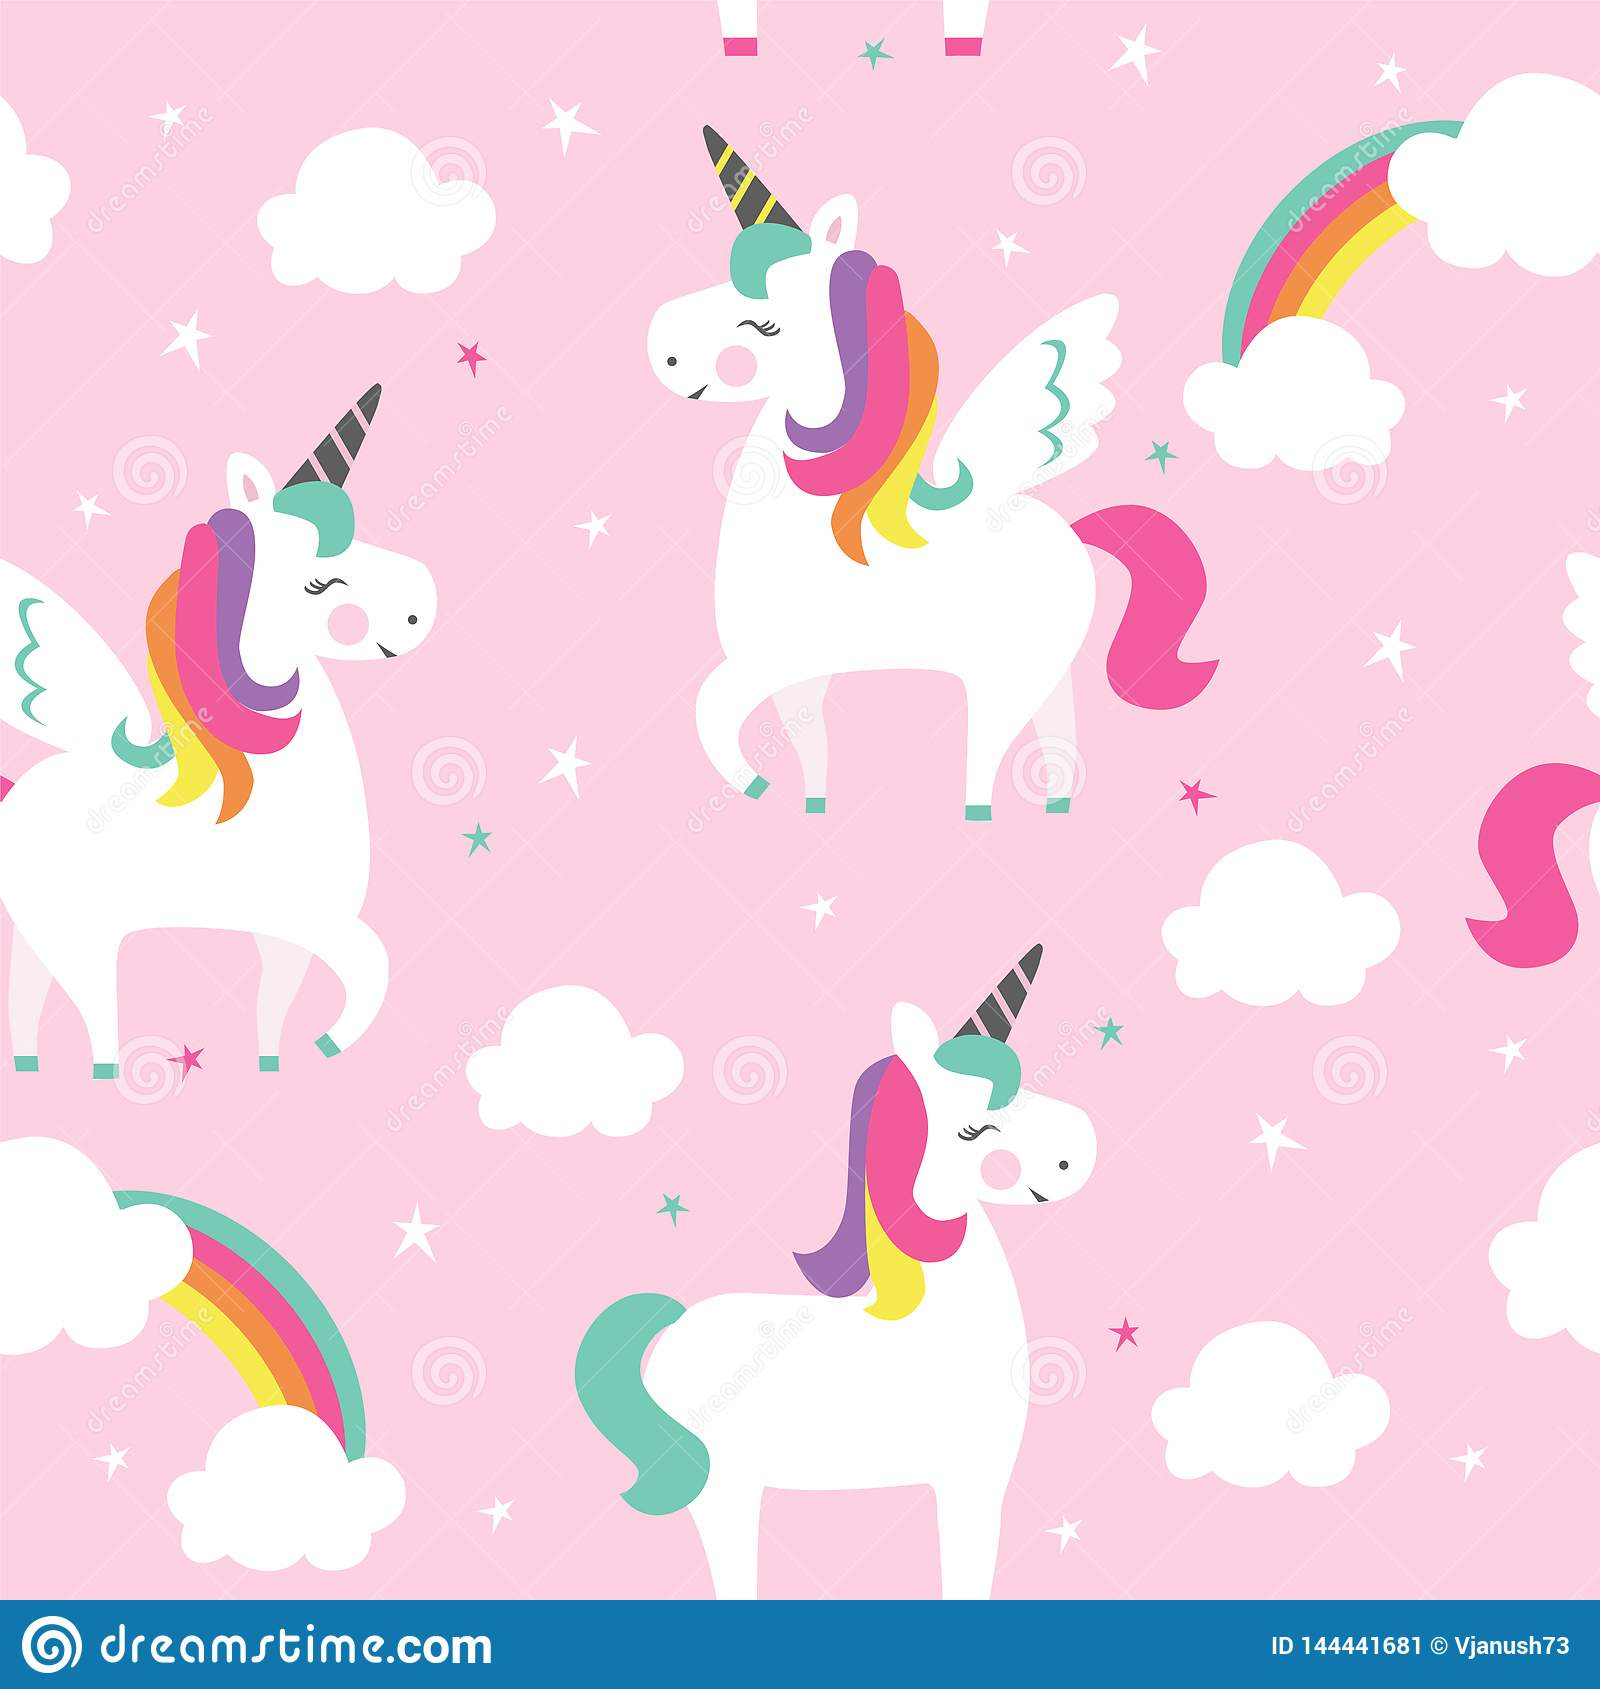 Unicorns with wings, stars and clouds.